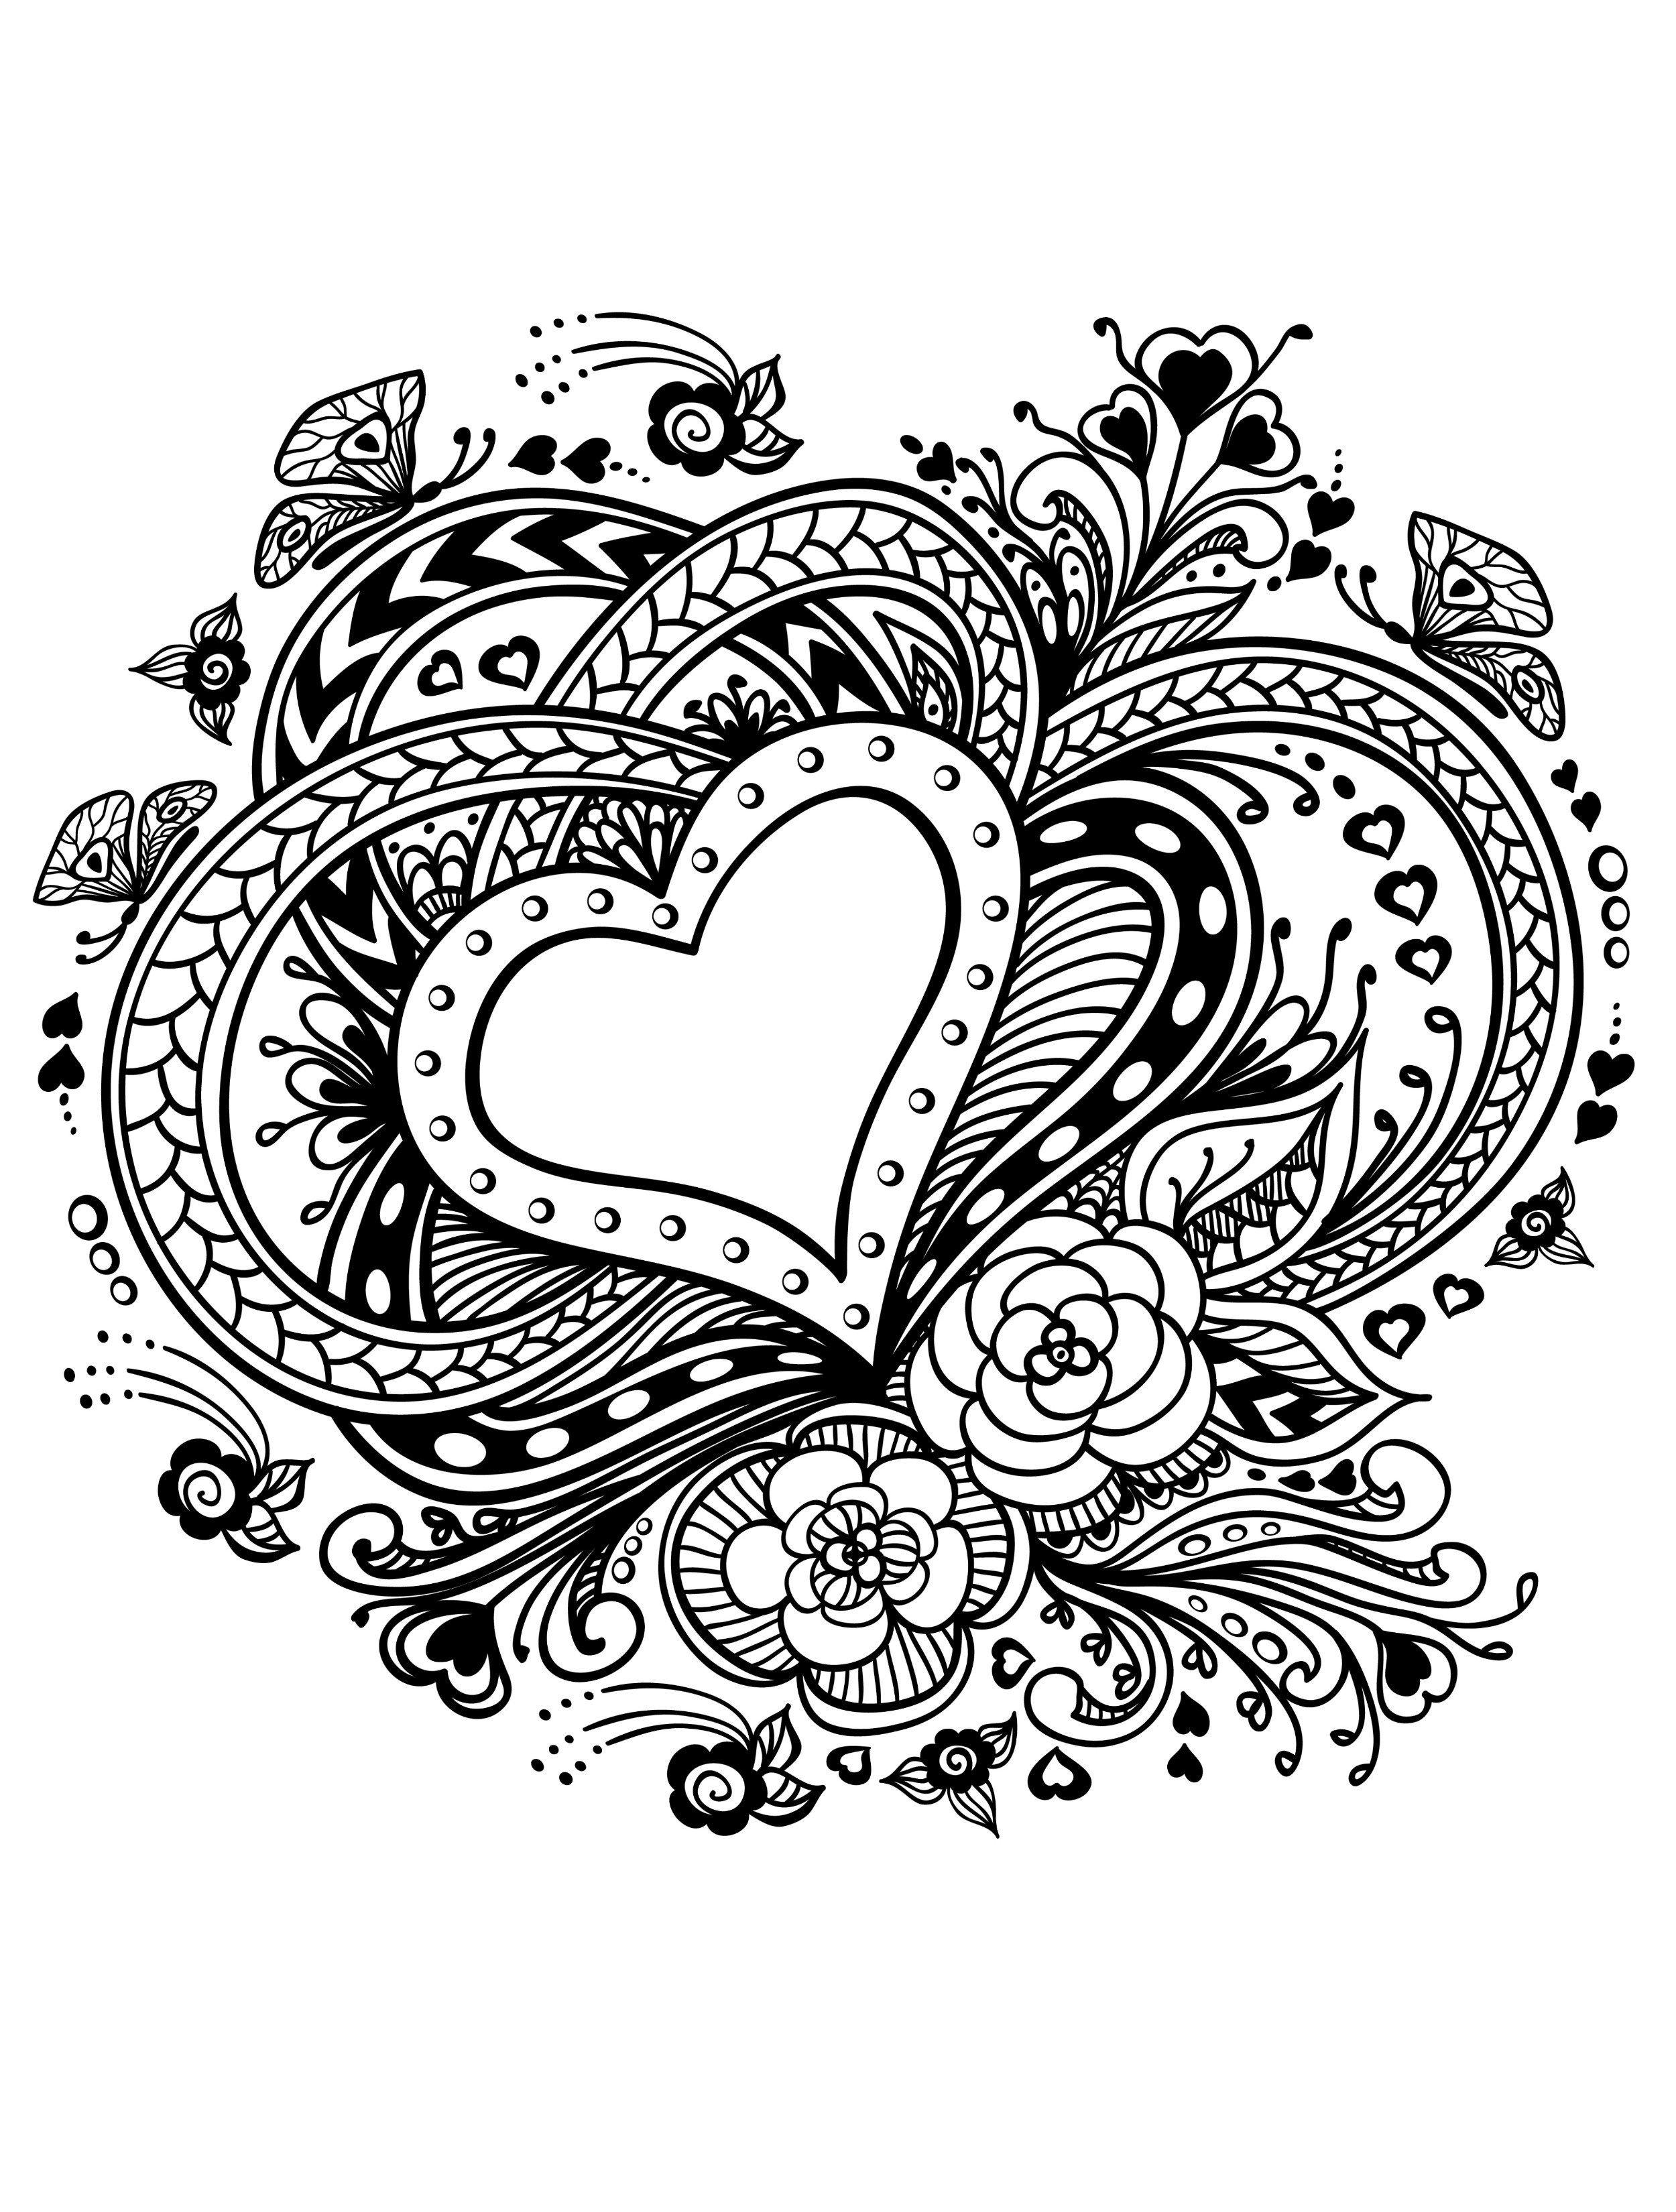 20 Free Printable Valentines Adult Coloring Pages | Coloring Pages - Free Printable Valentine Books